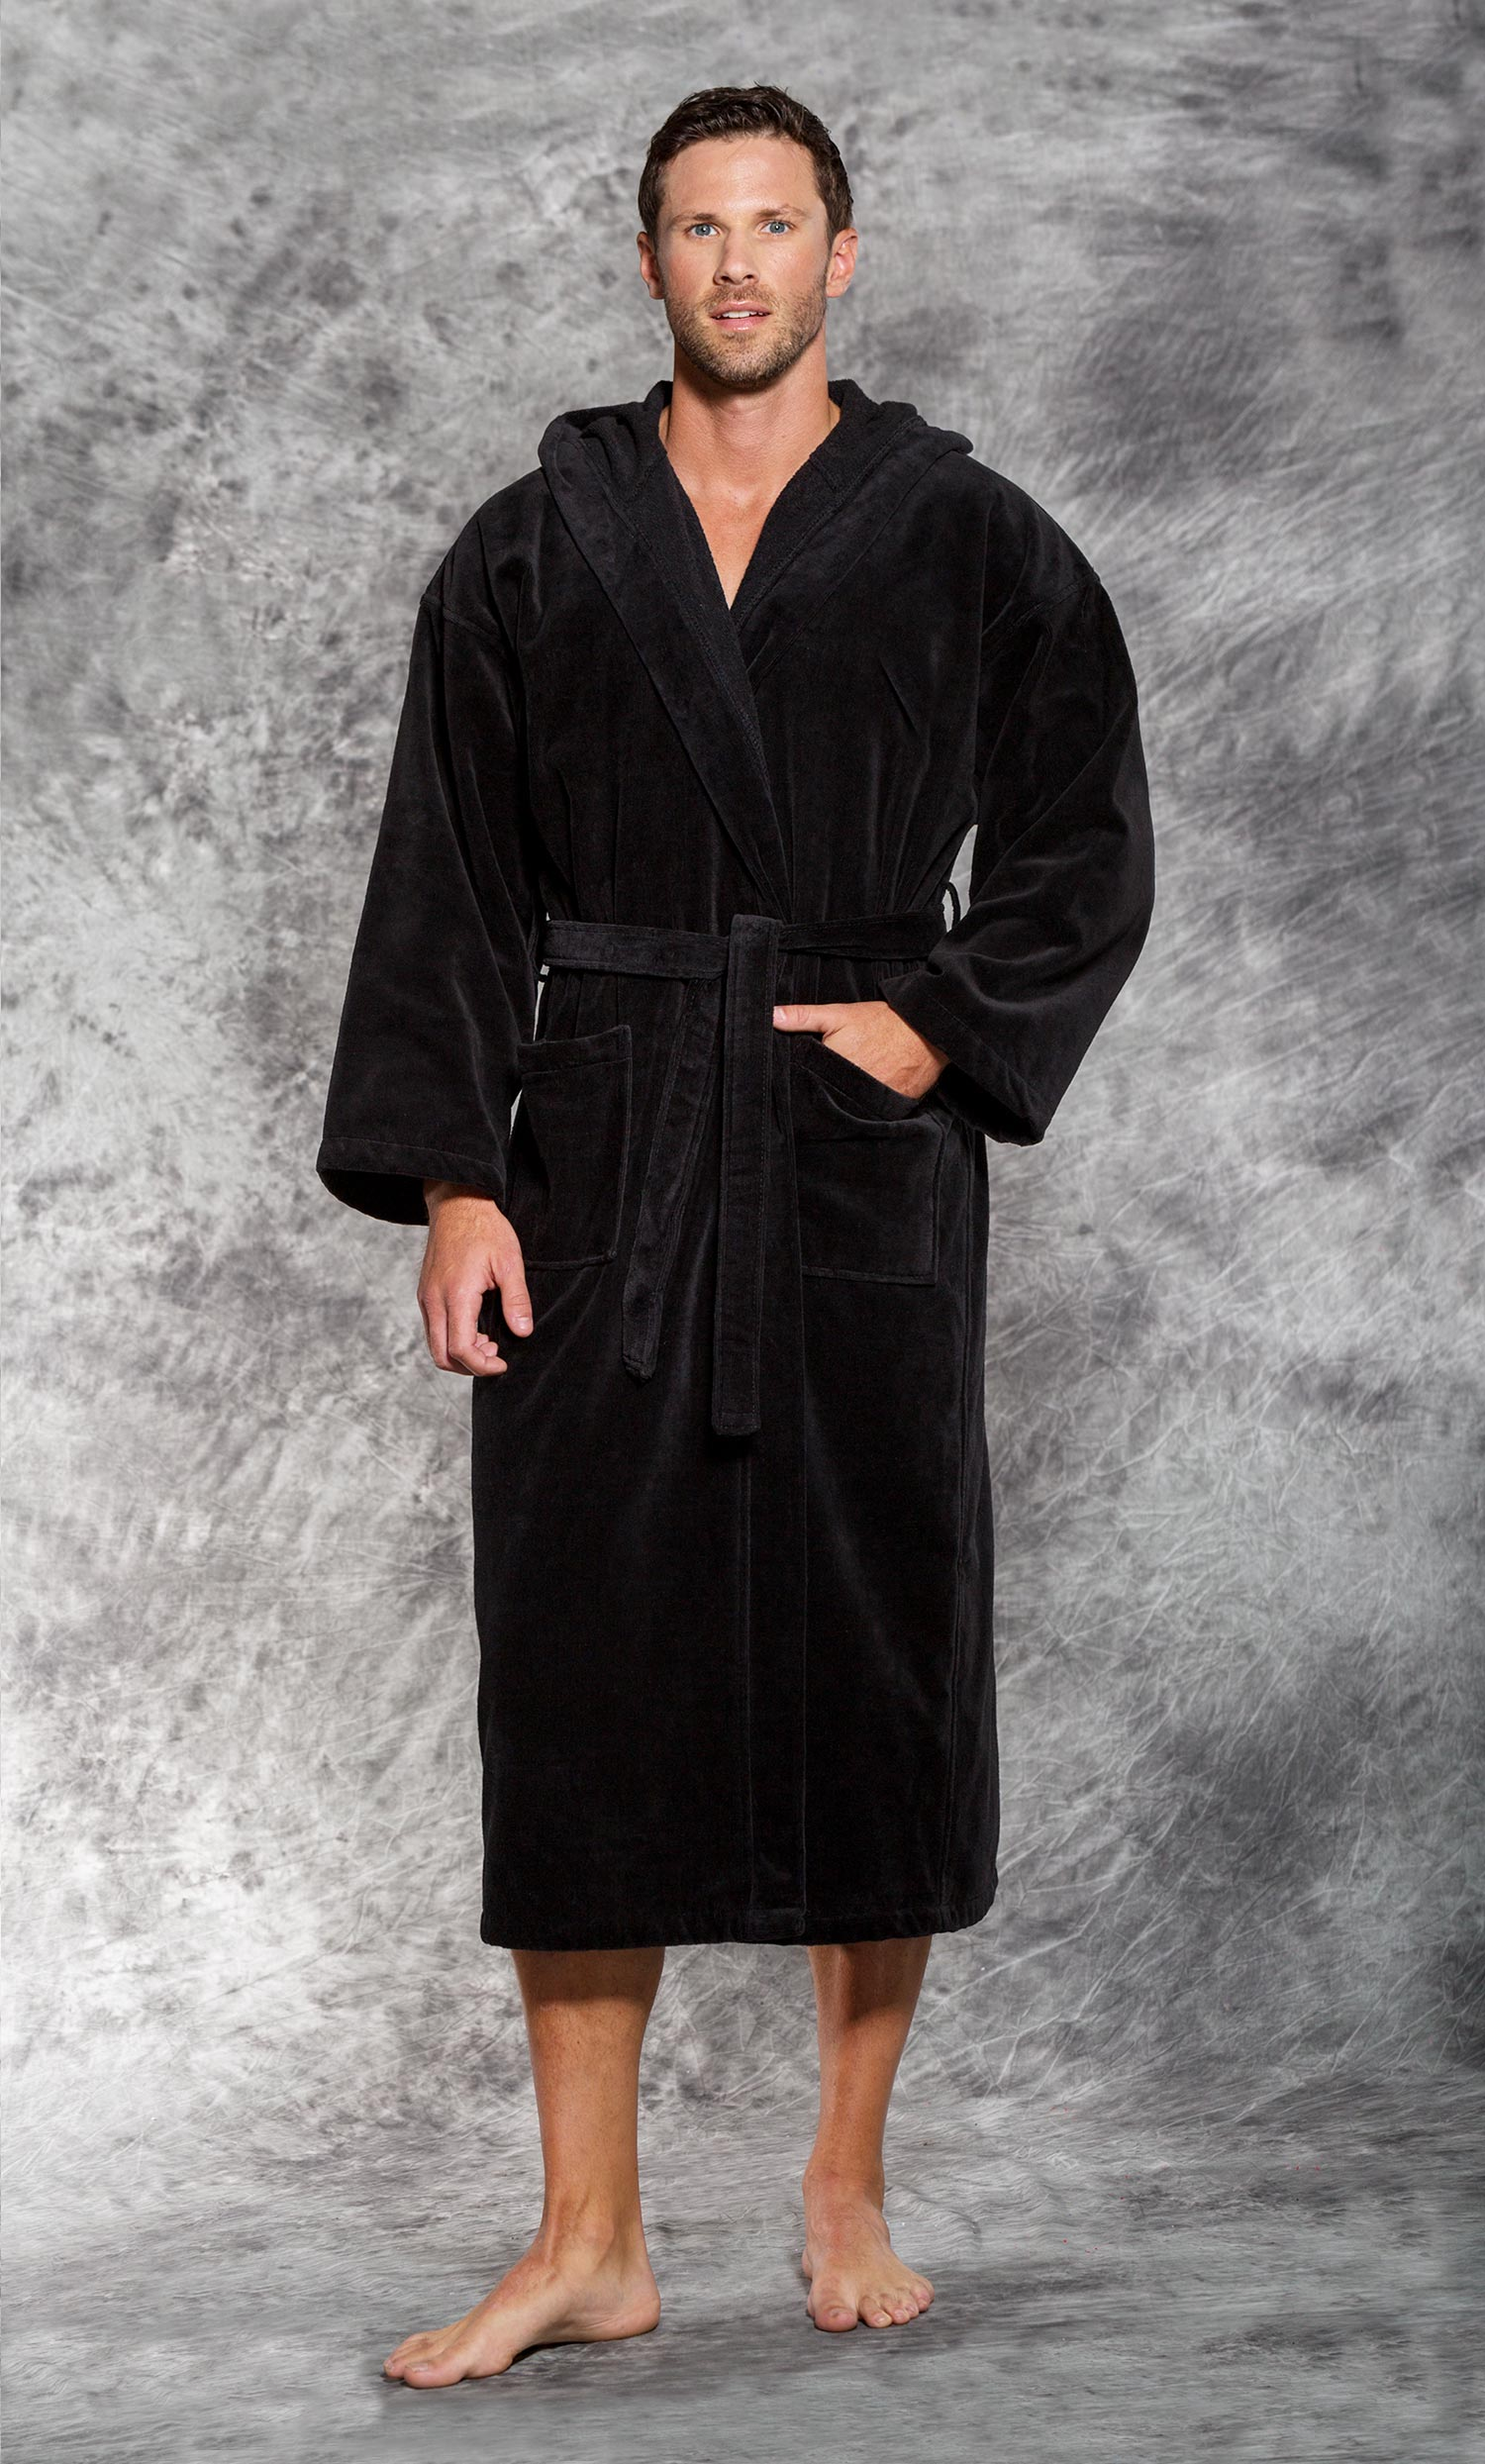 bf9cd24ab3 Luxury Bathrobes   Robes    Terry Velour Bathrobes    Terry Velour Hooded  Bathrobes    100% Turkish Cotton Black Hooded Terry   Velour Bathrobe -  Wholesale ...